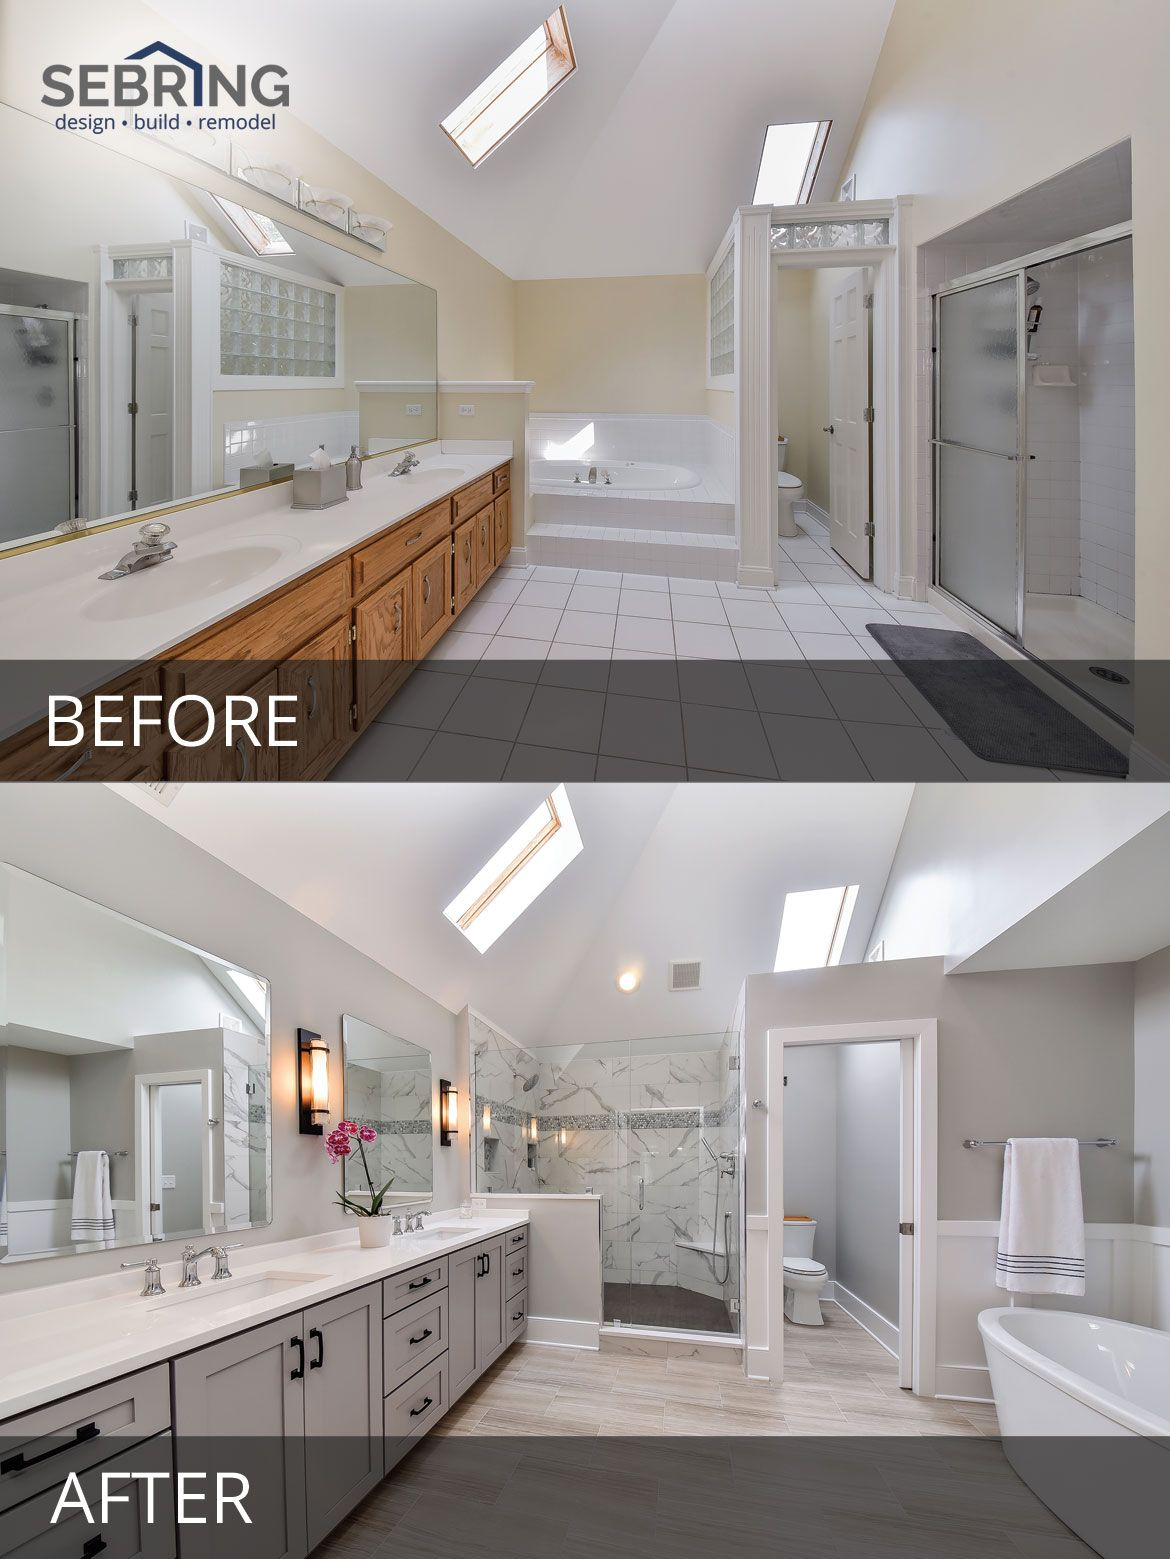 Sarah Ray S Master Bathroom Before After Pictures Bathroom Before After Bathroom Remodel Master Bathrooms Remodel Bathroom before and after